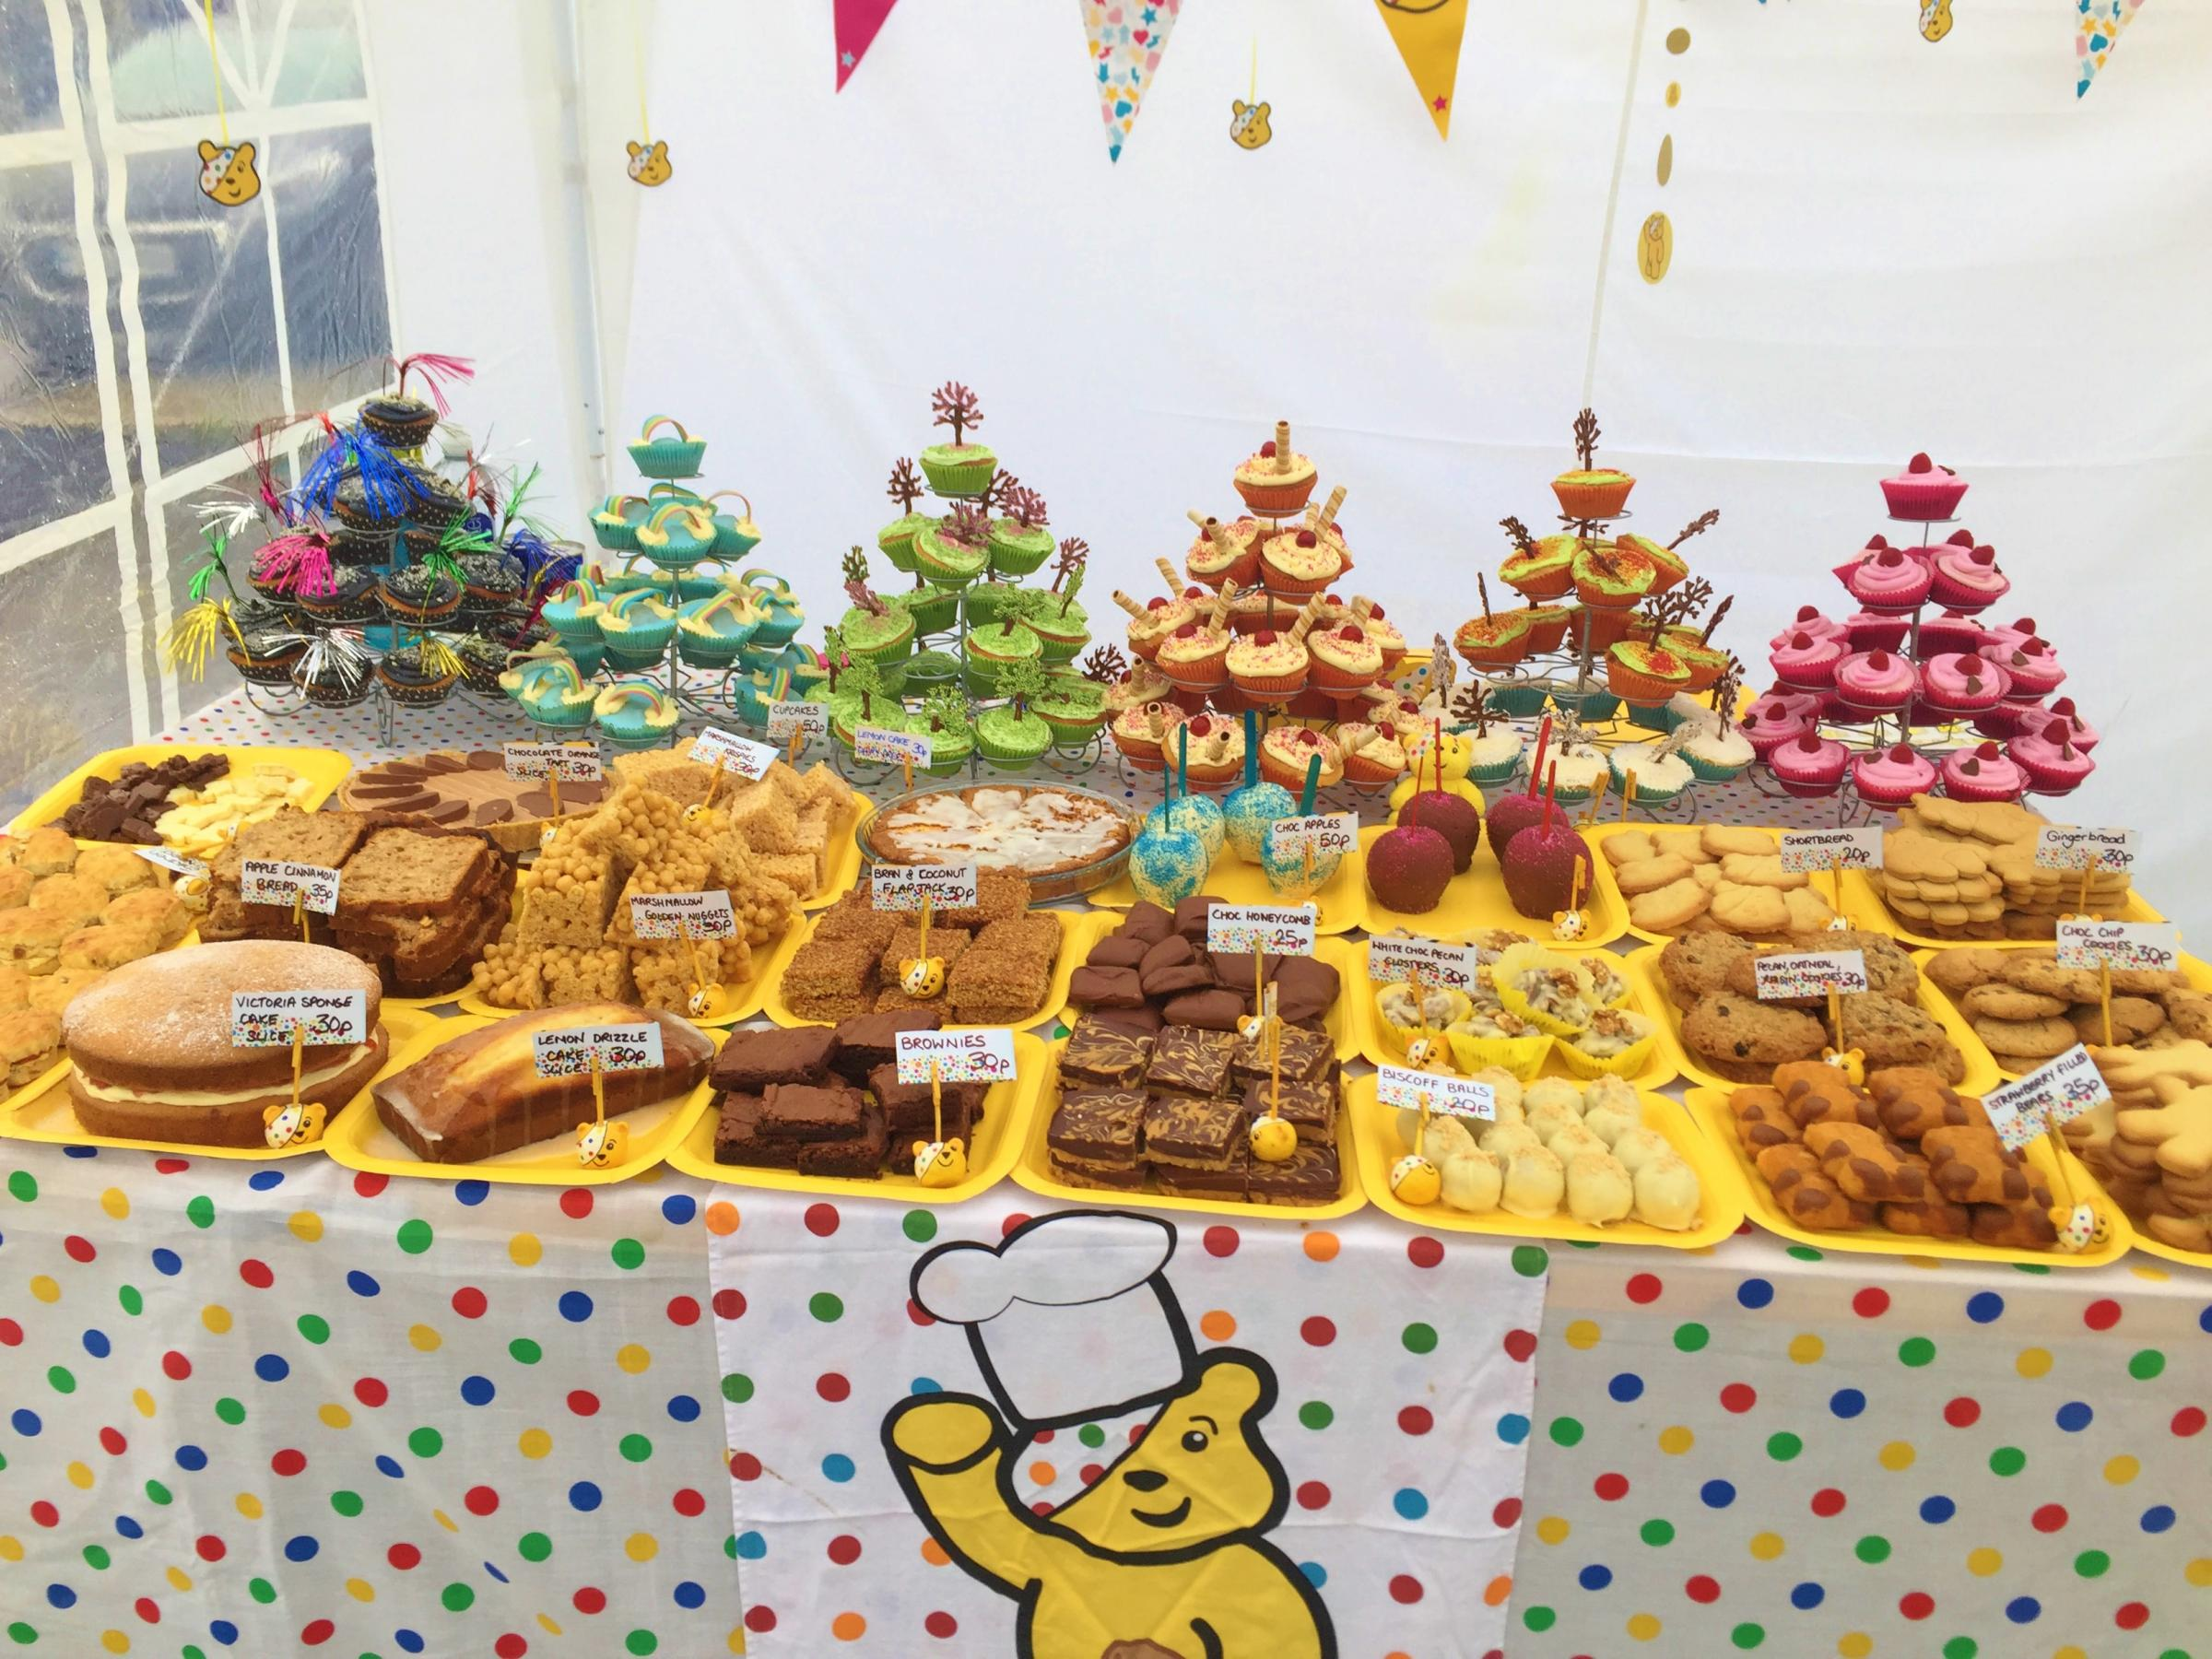 Children in Need Bake Sale